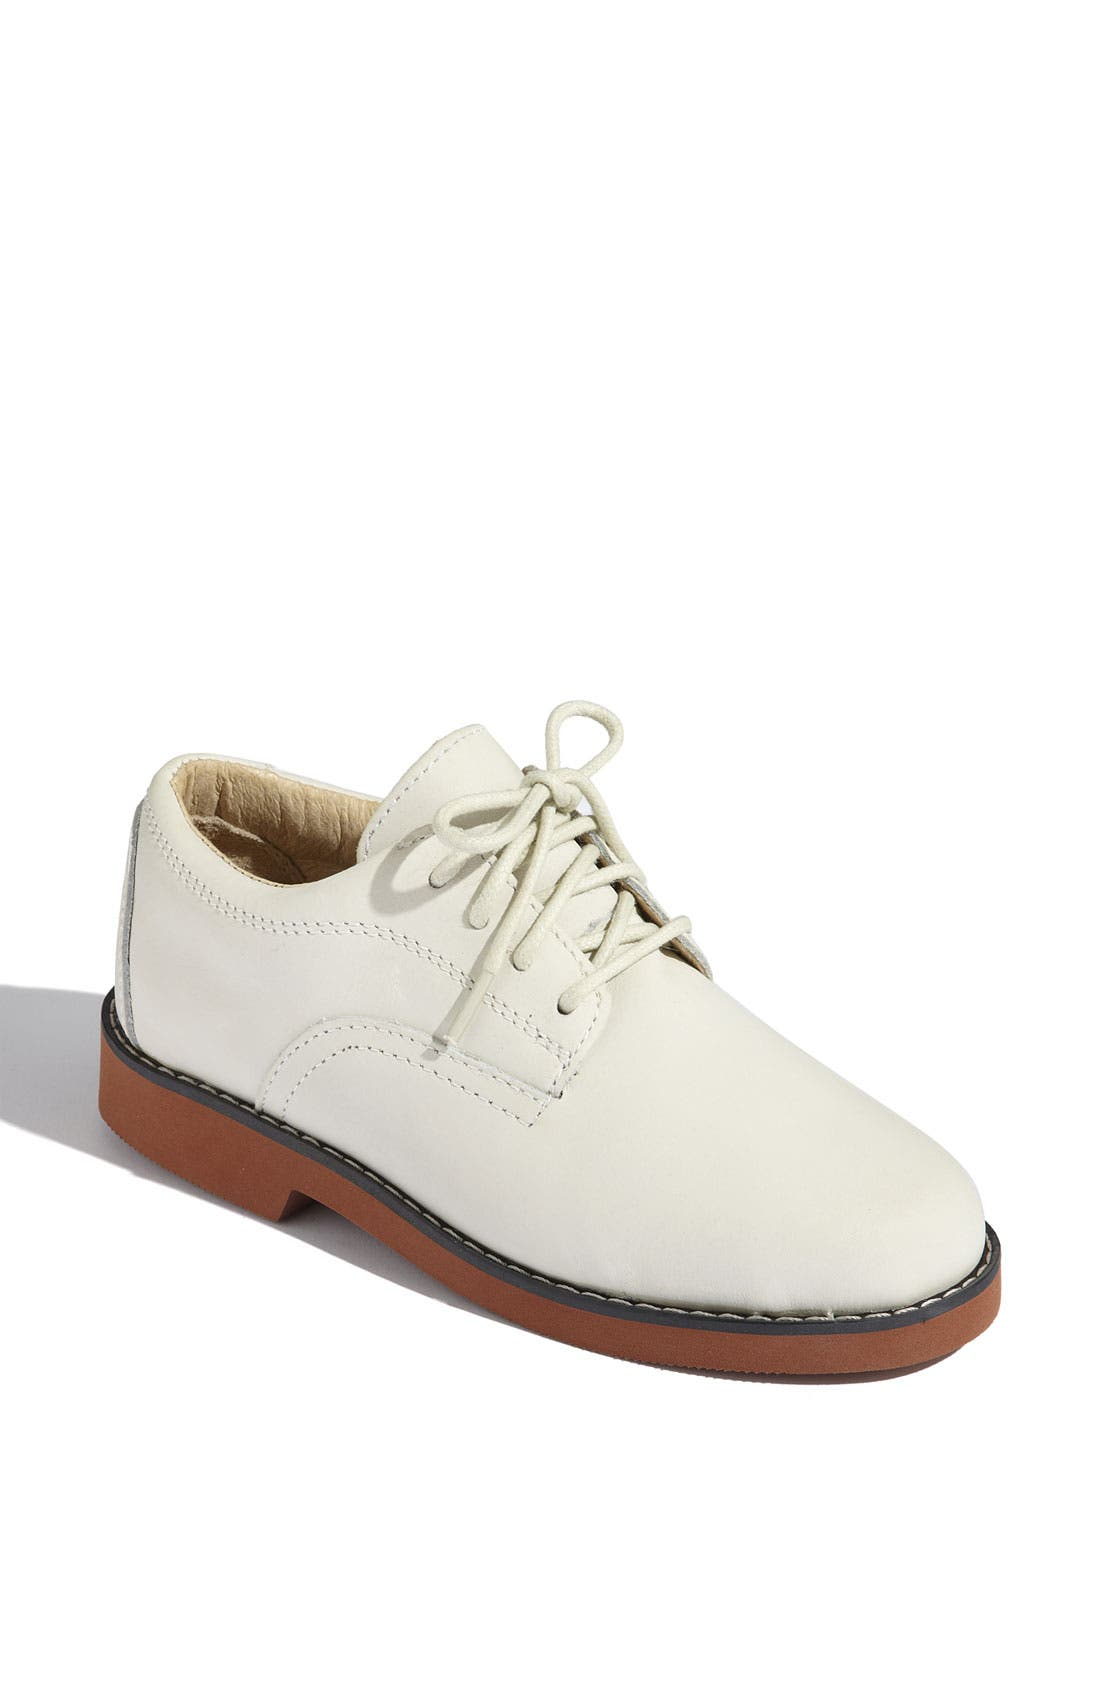 Main Image - Jumping Jacks 'Buck' Oxford Shoe (Toddler, Little Kid & Big Kid)